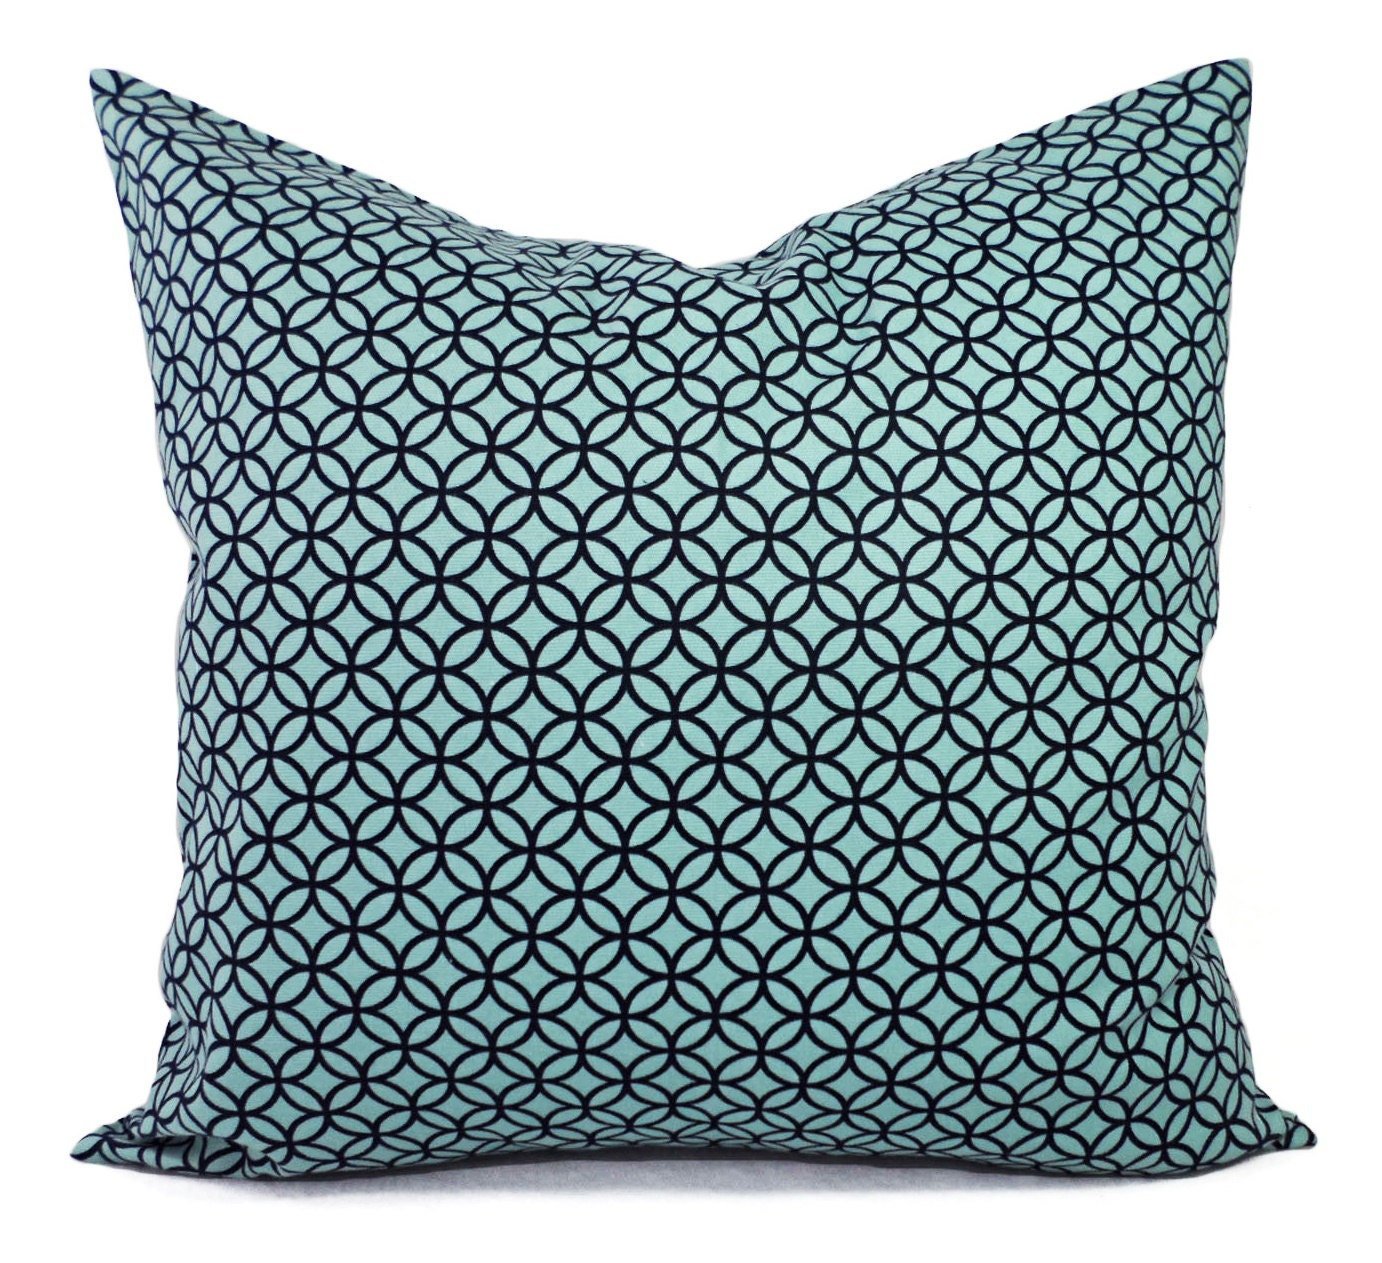 Throw Pillows In Clearance : CLEARANCE Pillow Cover Decorative Throw Pillow Cover Blue